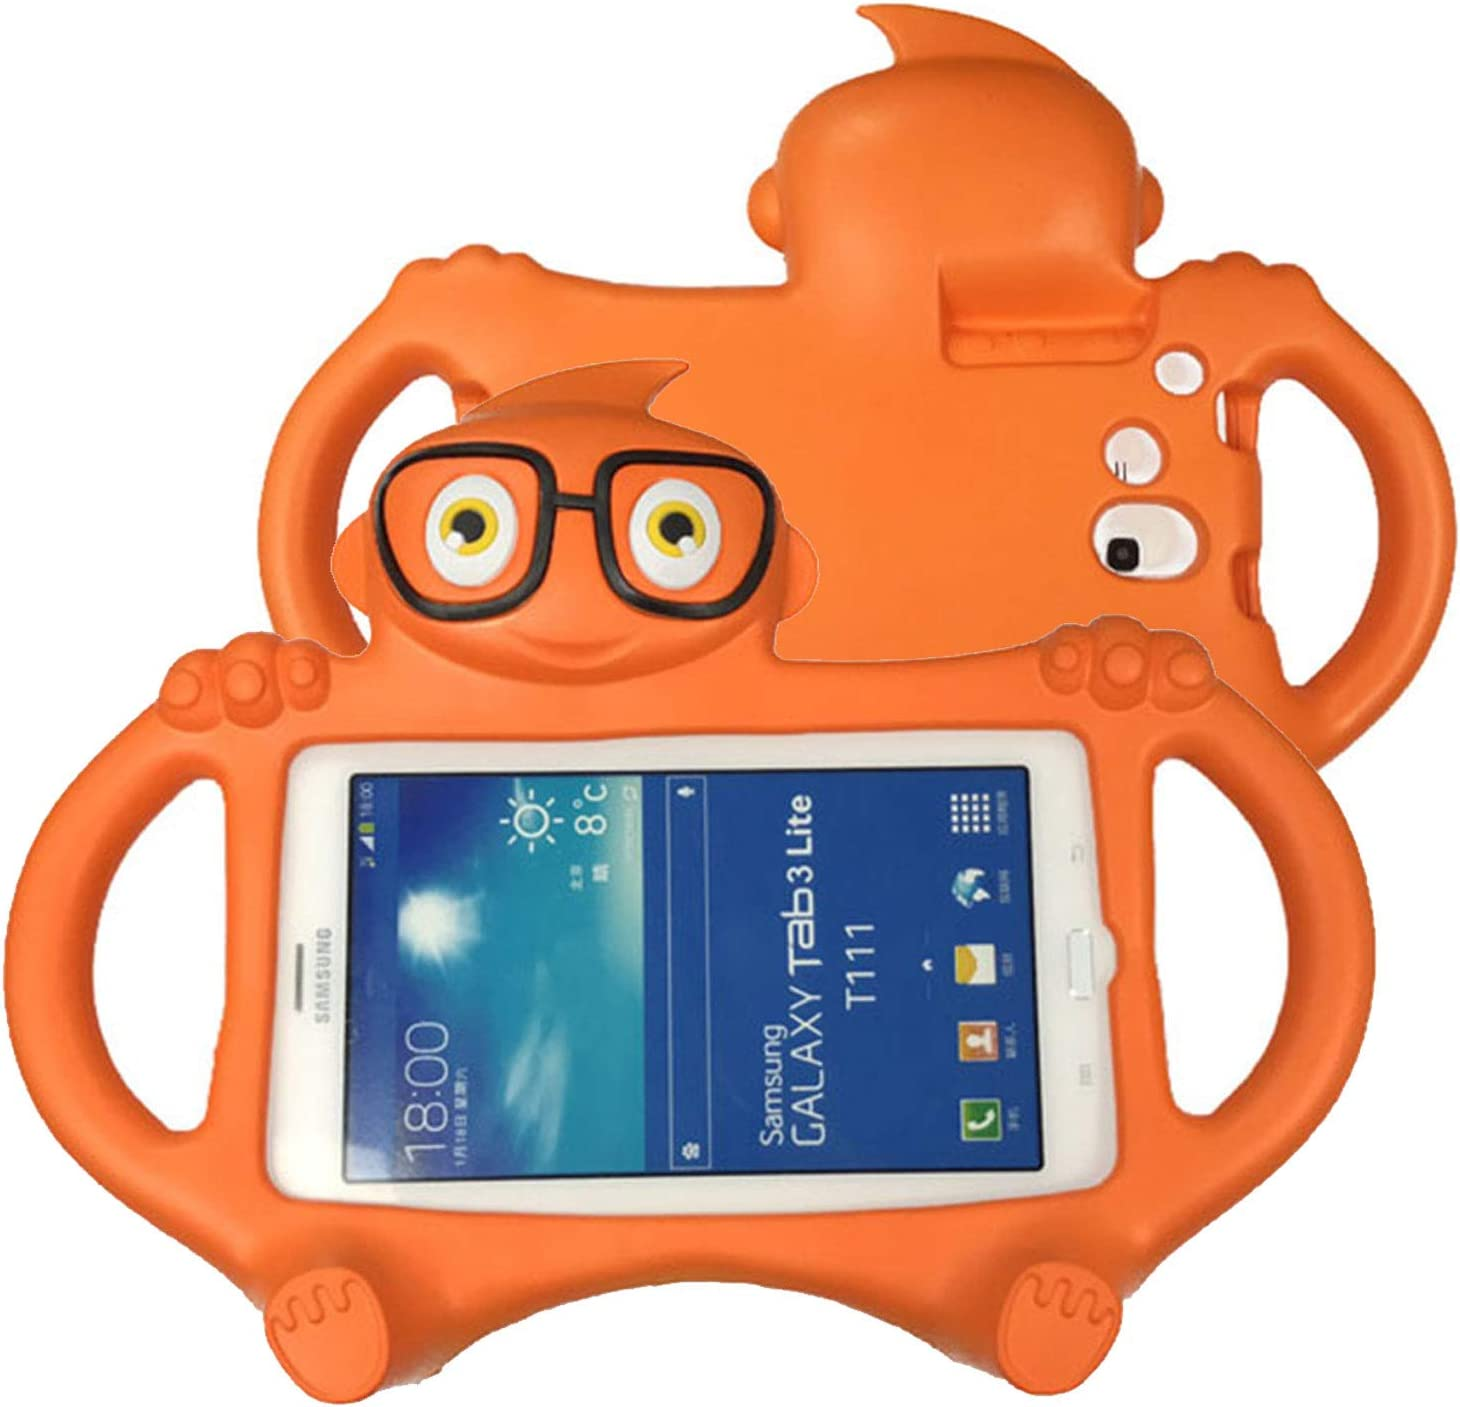 Kids Case for Samsung Galaxy Tab 3/3 Lite 7.0 inch, T110/T210 Case, UGOcase Lightweight Shockproof EVA Foam Super Protection Handle Stand Case Cover for Galaxy 7 inch SM-T110 T111 T210 T211, Orange